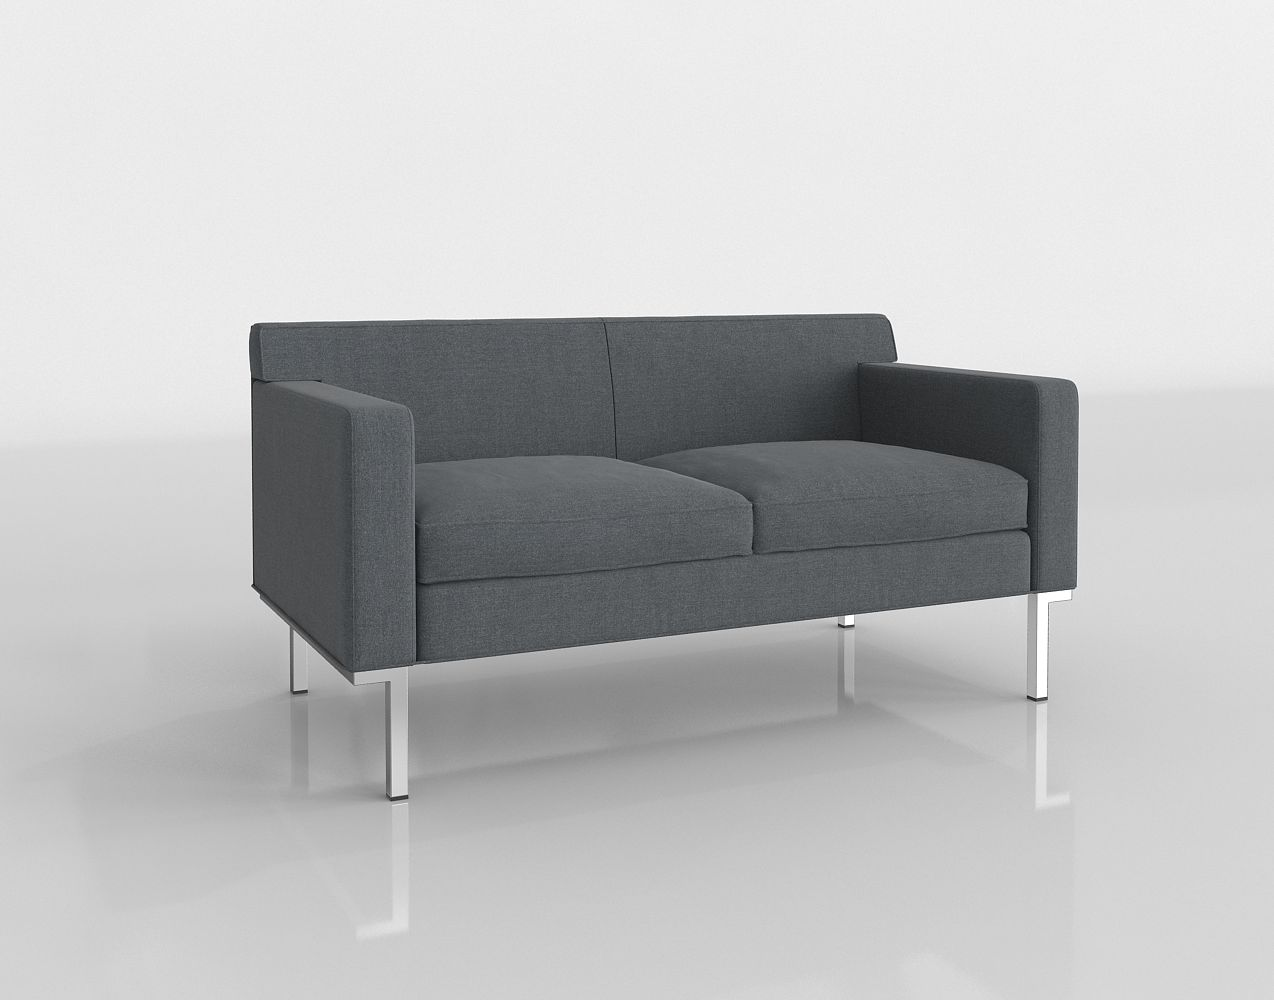 dwr theatre sofa review sheets online two seater glancing eye